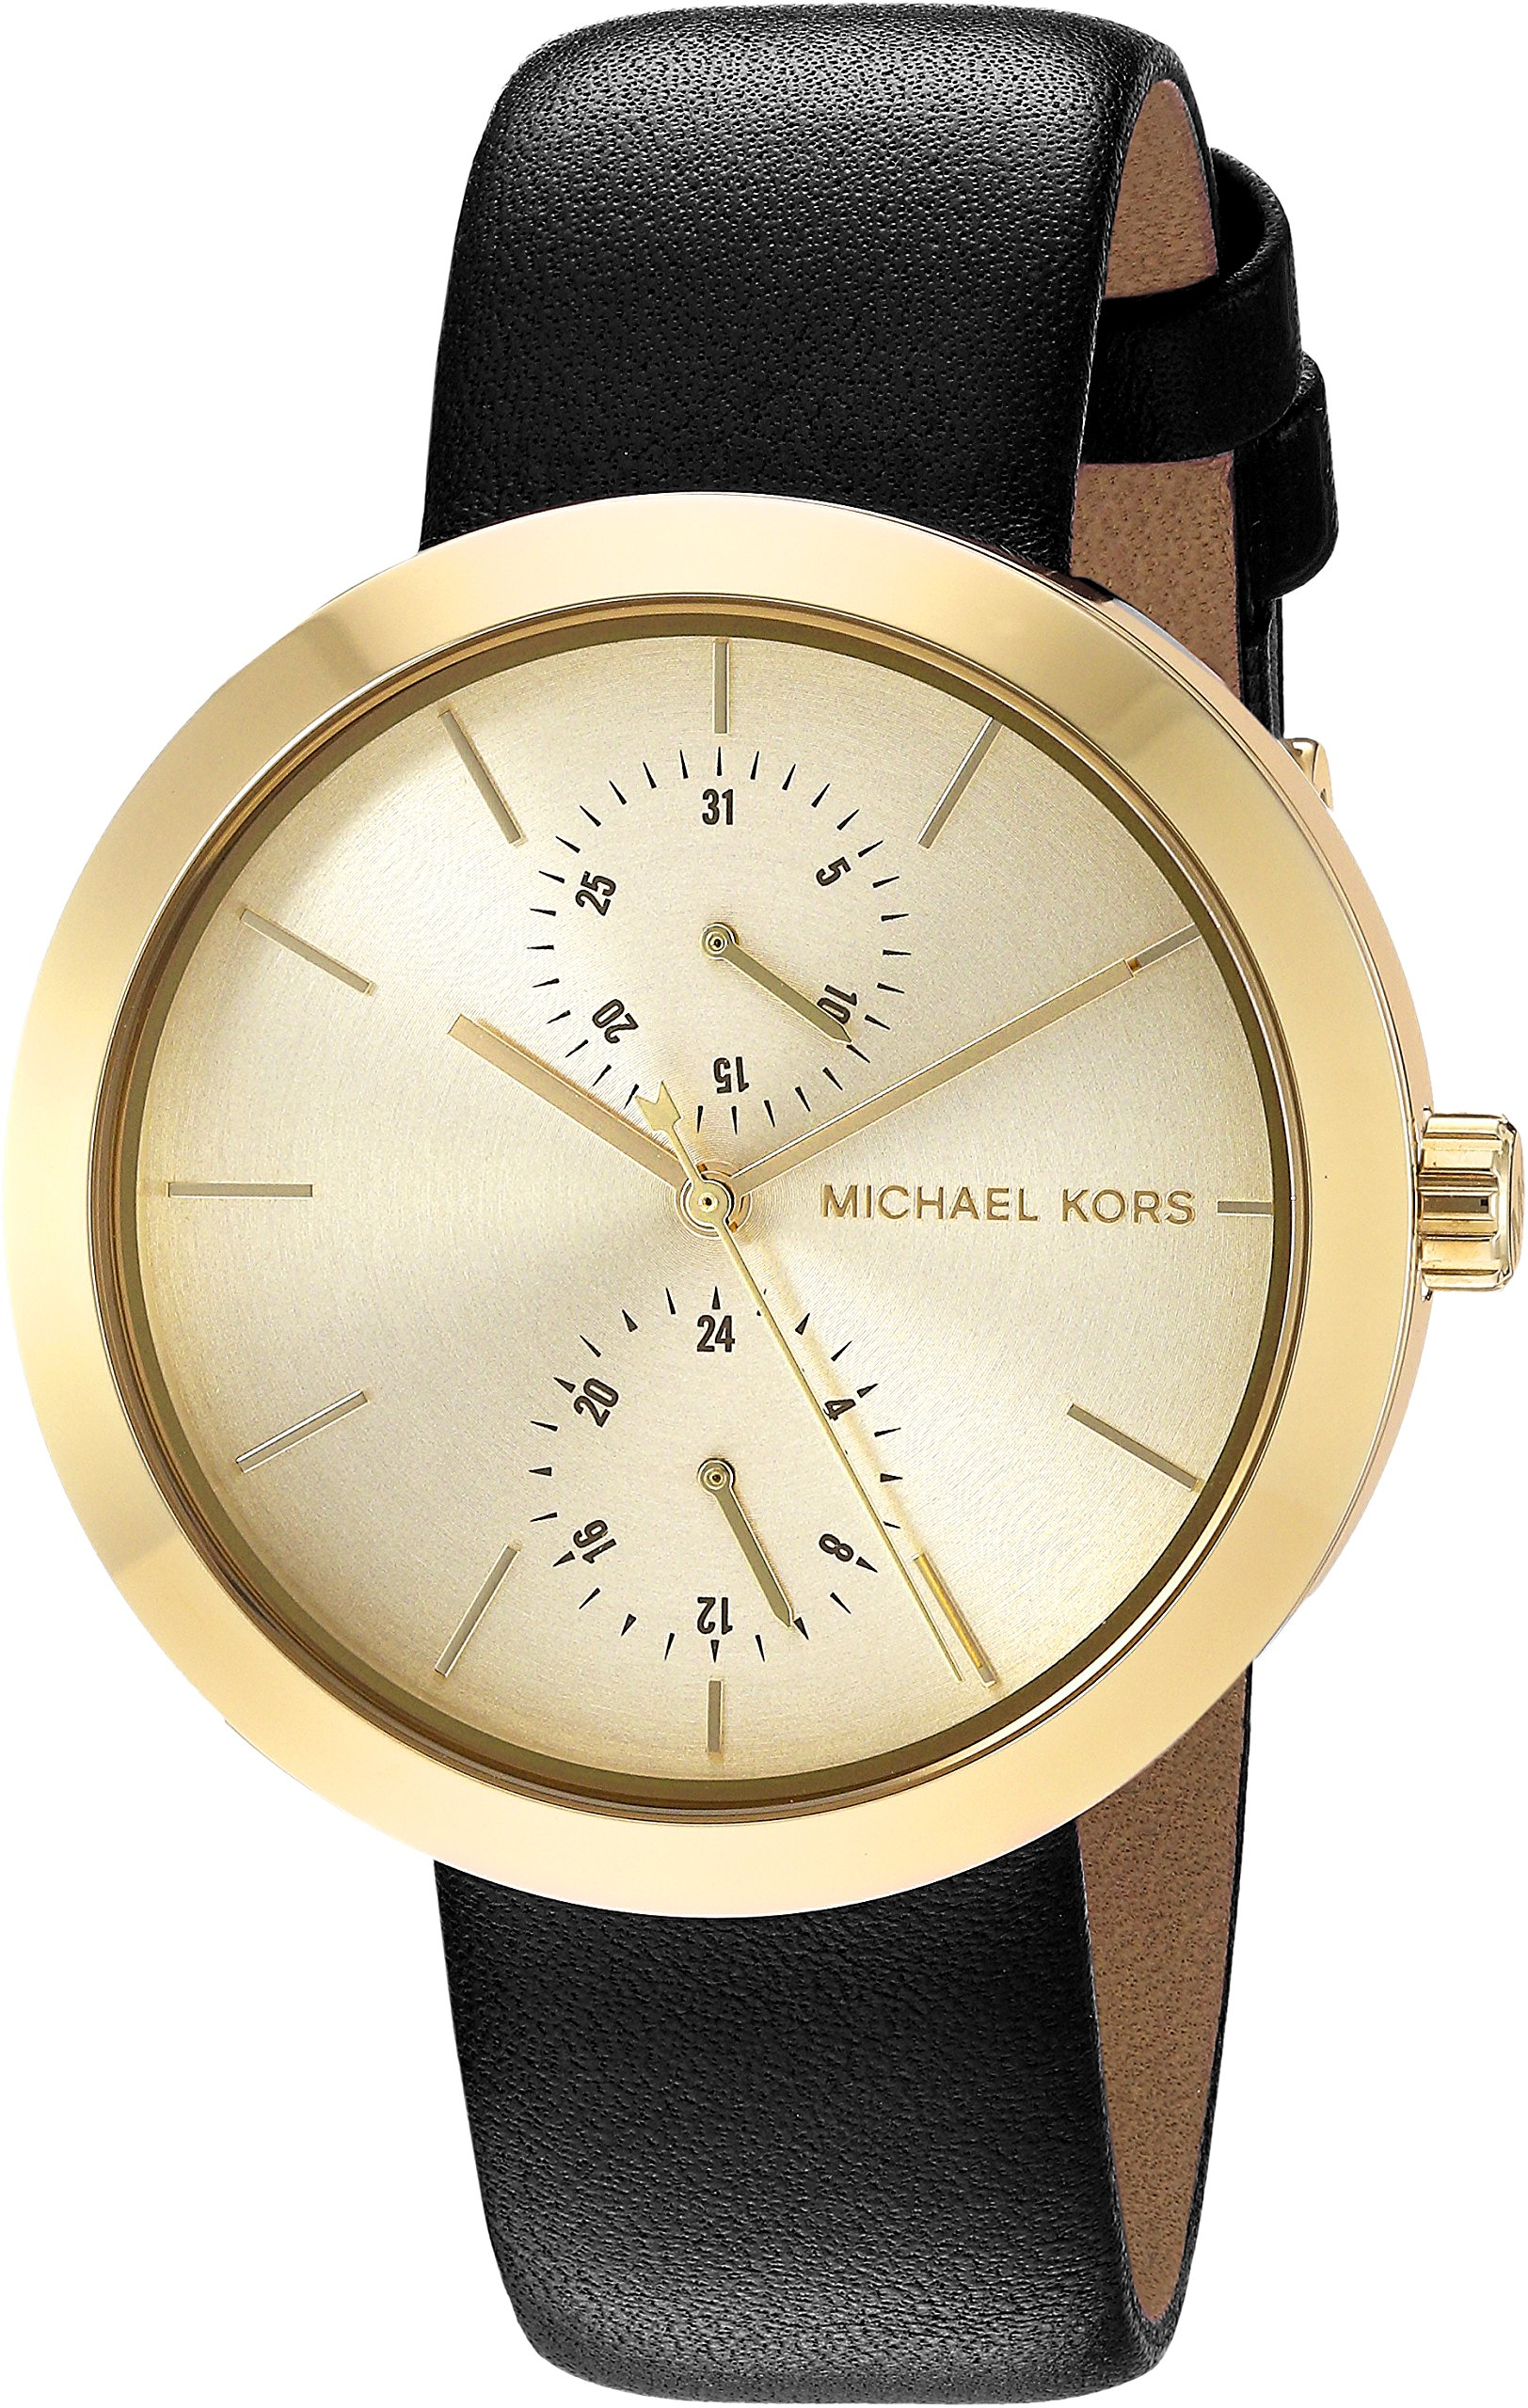 Michael Kors Women's Garner Goldtone And Black Leather Multifunction Watch